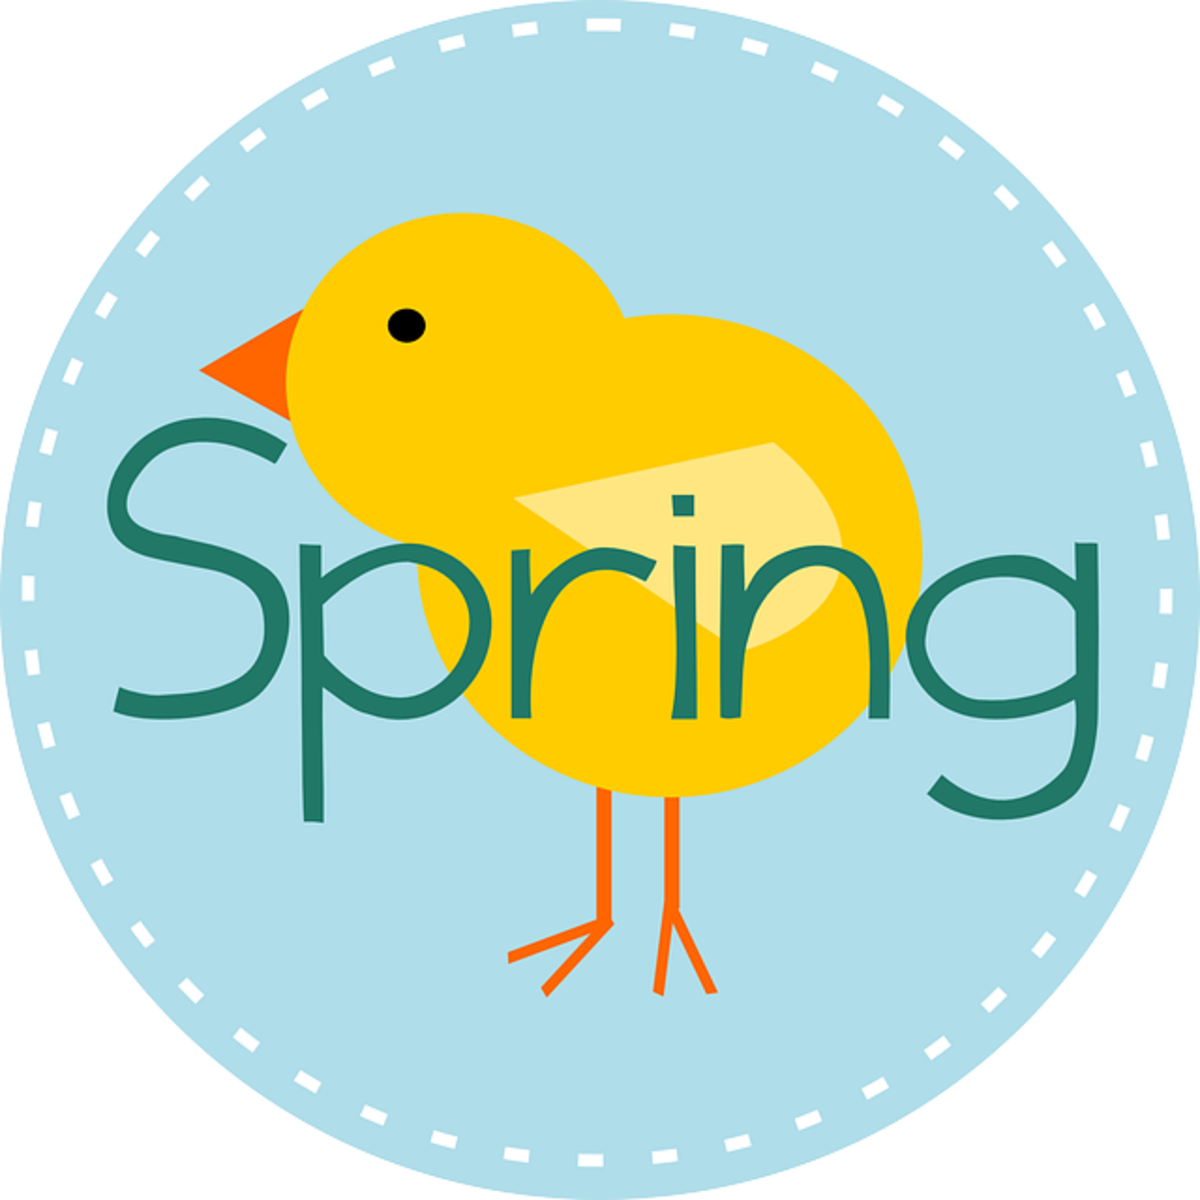 Spring with Chick